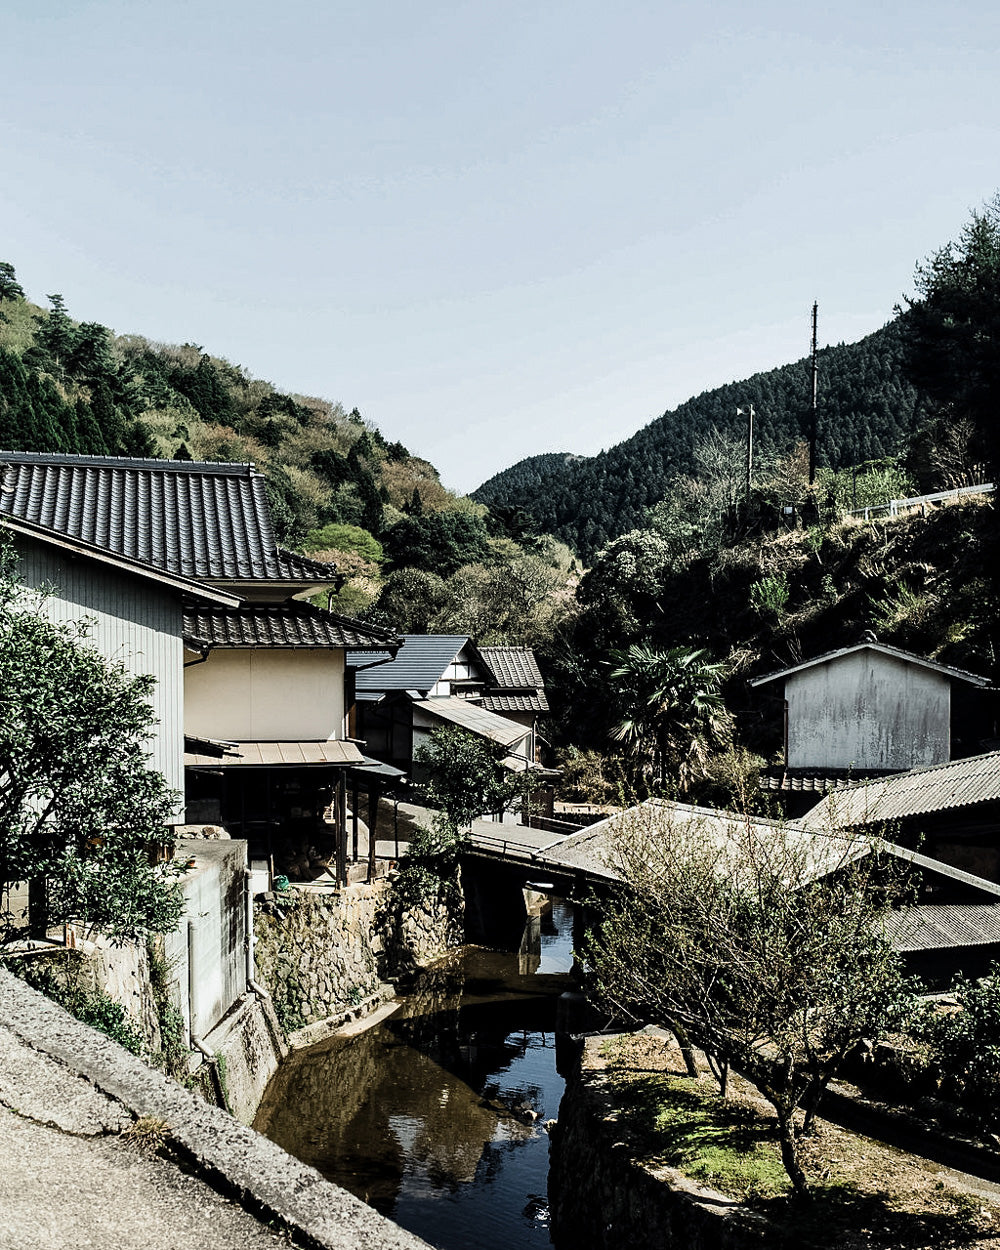 Onta pottery village in Japan